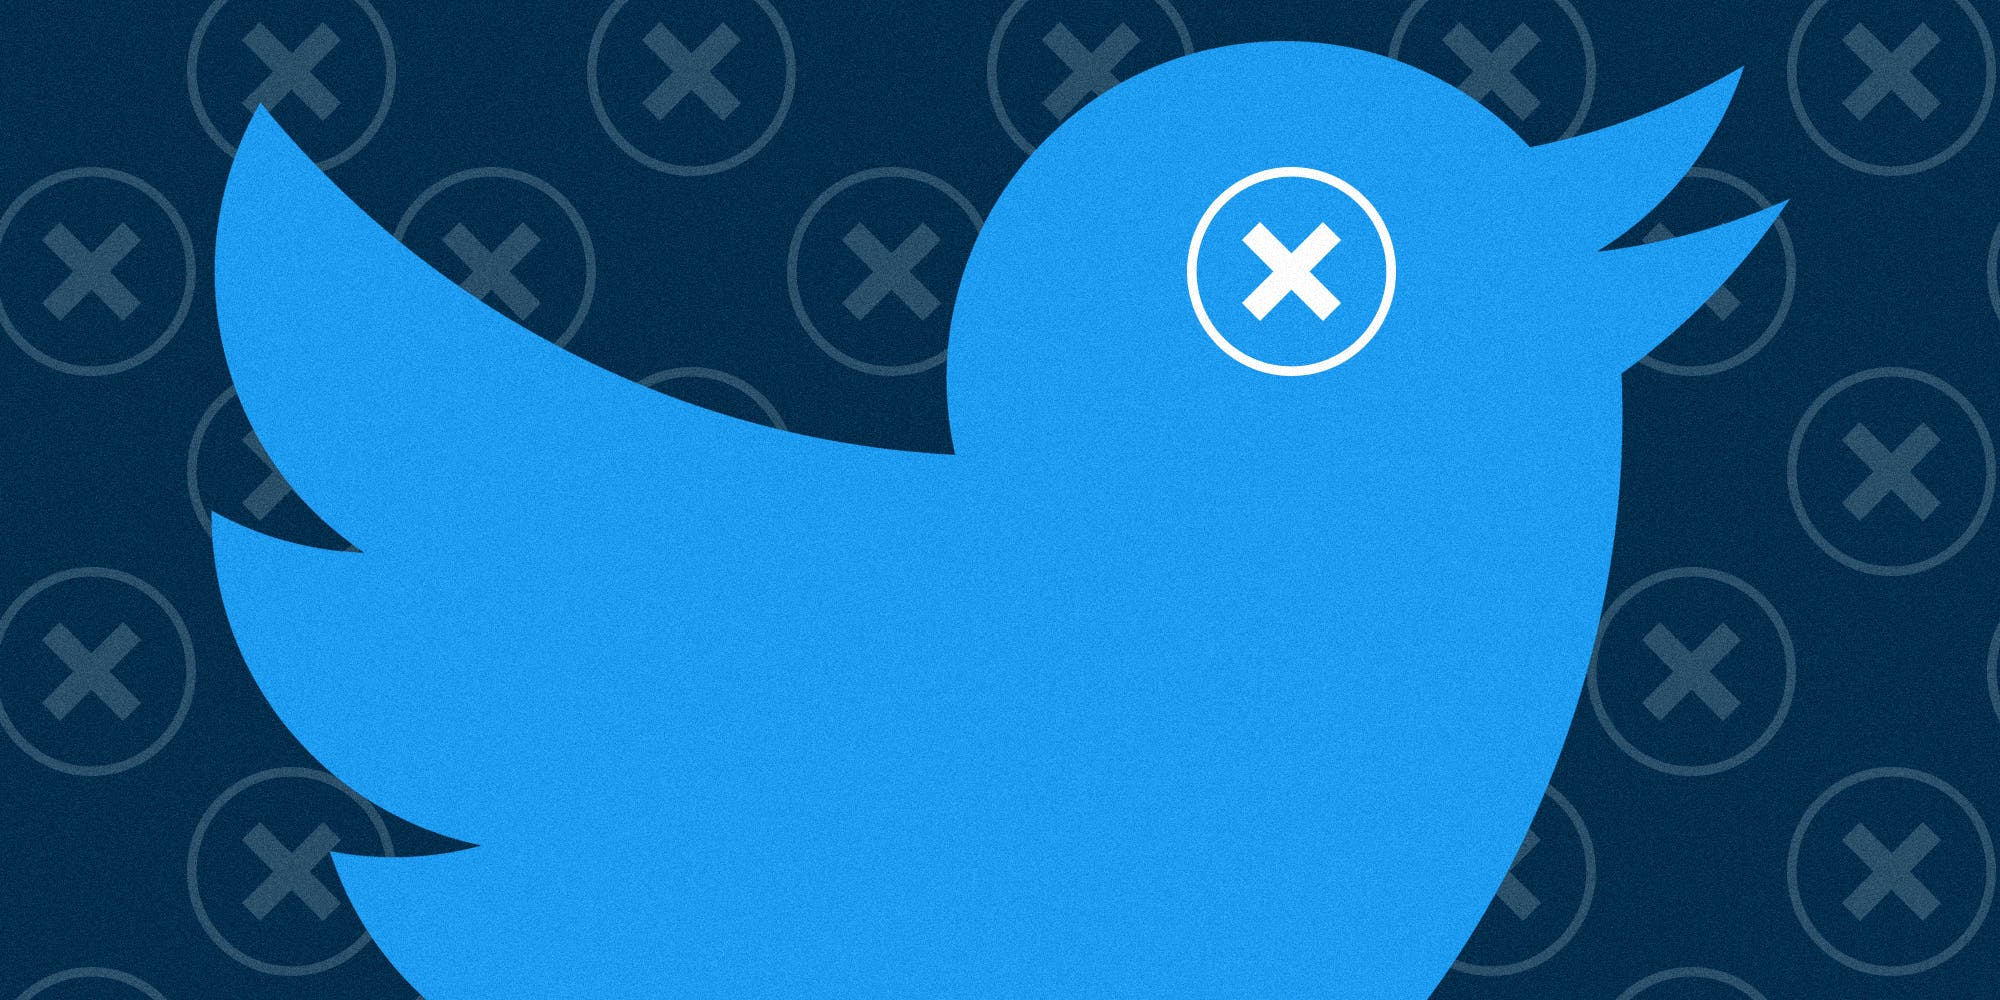 twitter bird with x in circle as eye and background